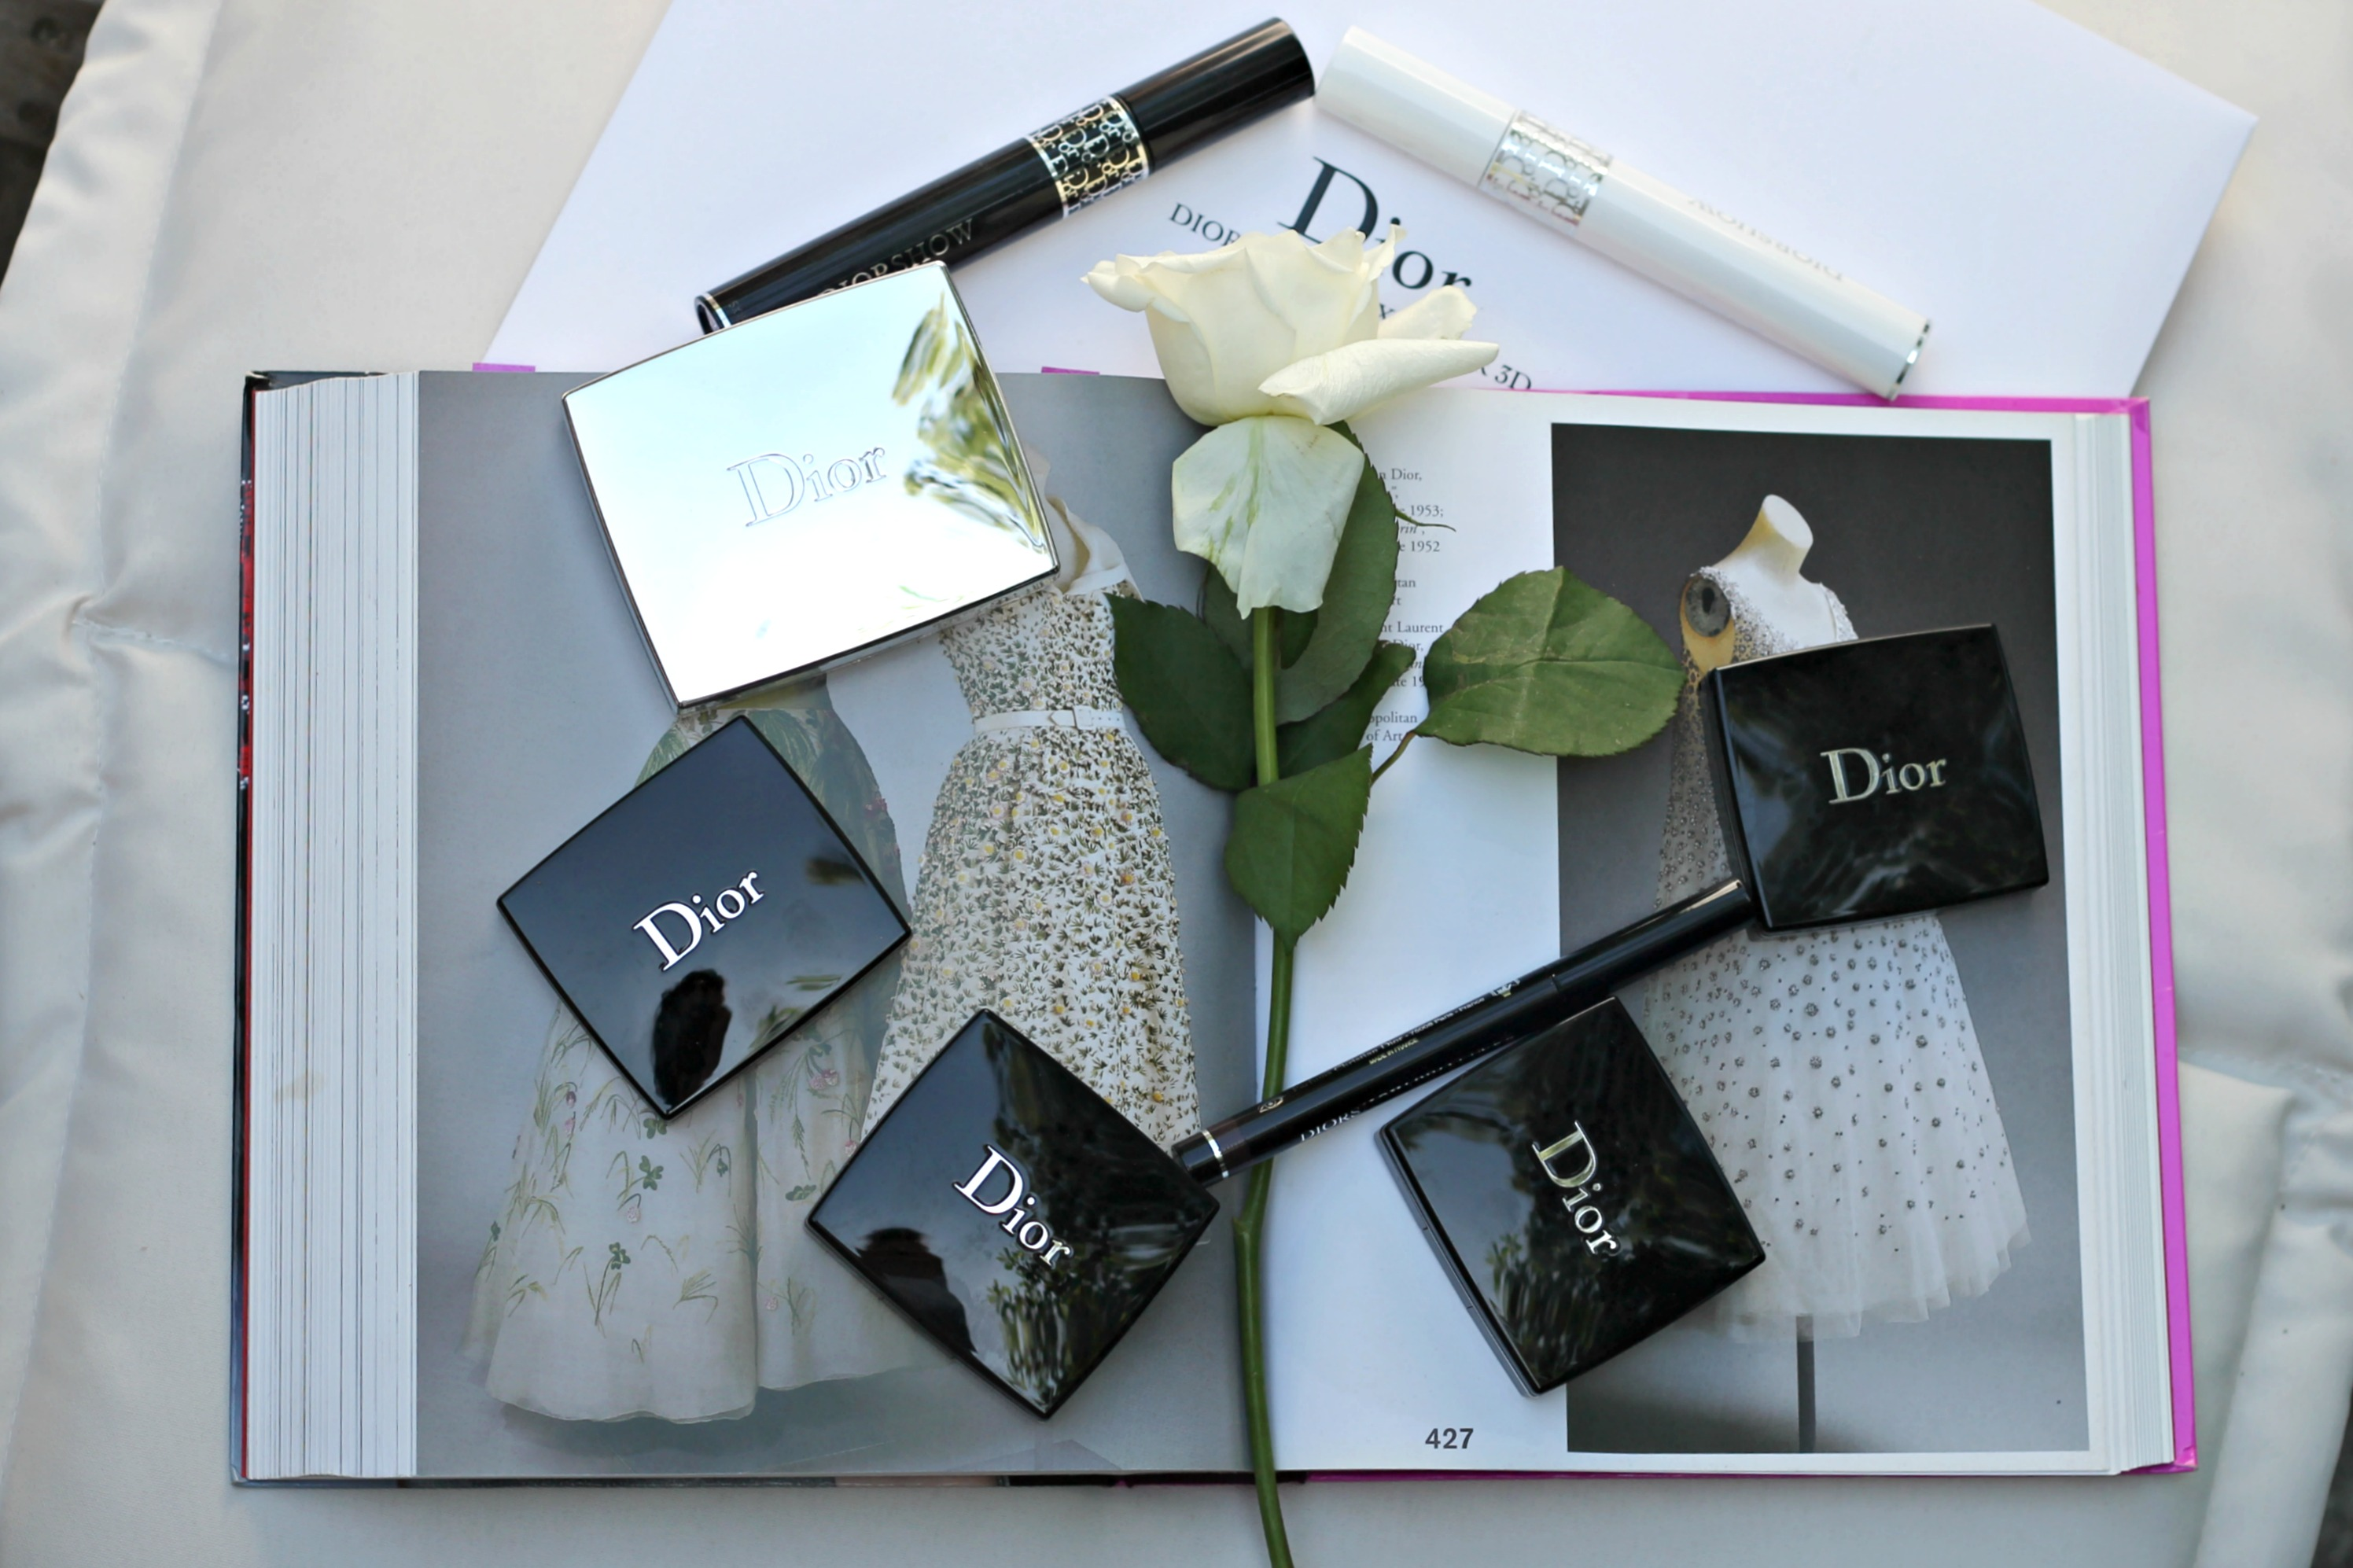 Diorshow maximizer 3d, diorshow nuovo, diorshow mascara opinioni 2016, diorshow all in brown, diorshow pro liner 2016, theladycracy.it, dior make up, diorshow estate 2016, dior make up 2016 novità, elisa bellino, theladycracy.it, fashion blogger italiane, fashion blog italia, web influencer, fashion blogger famose,